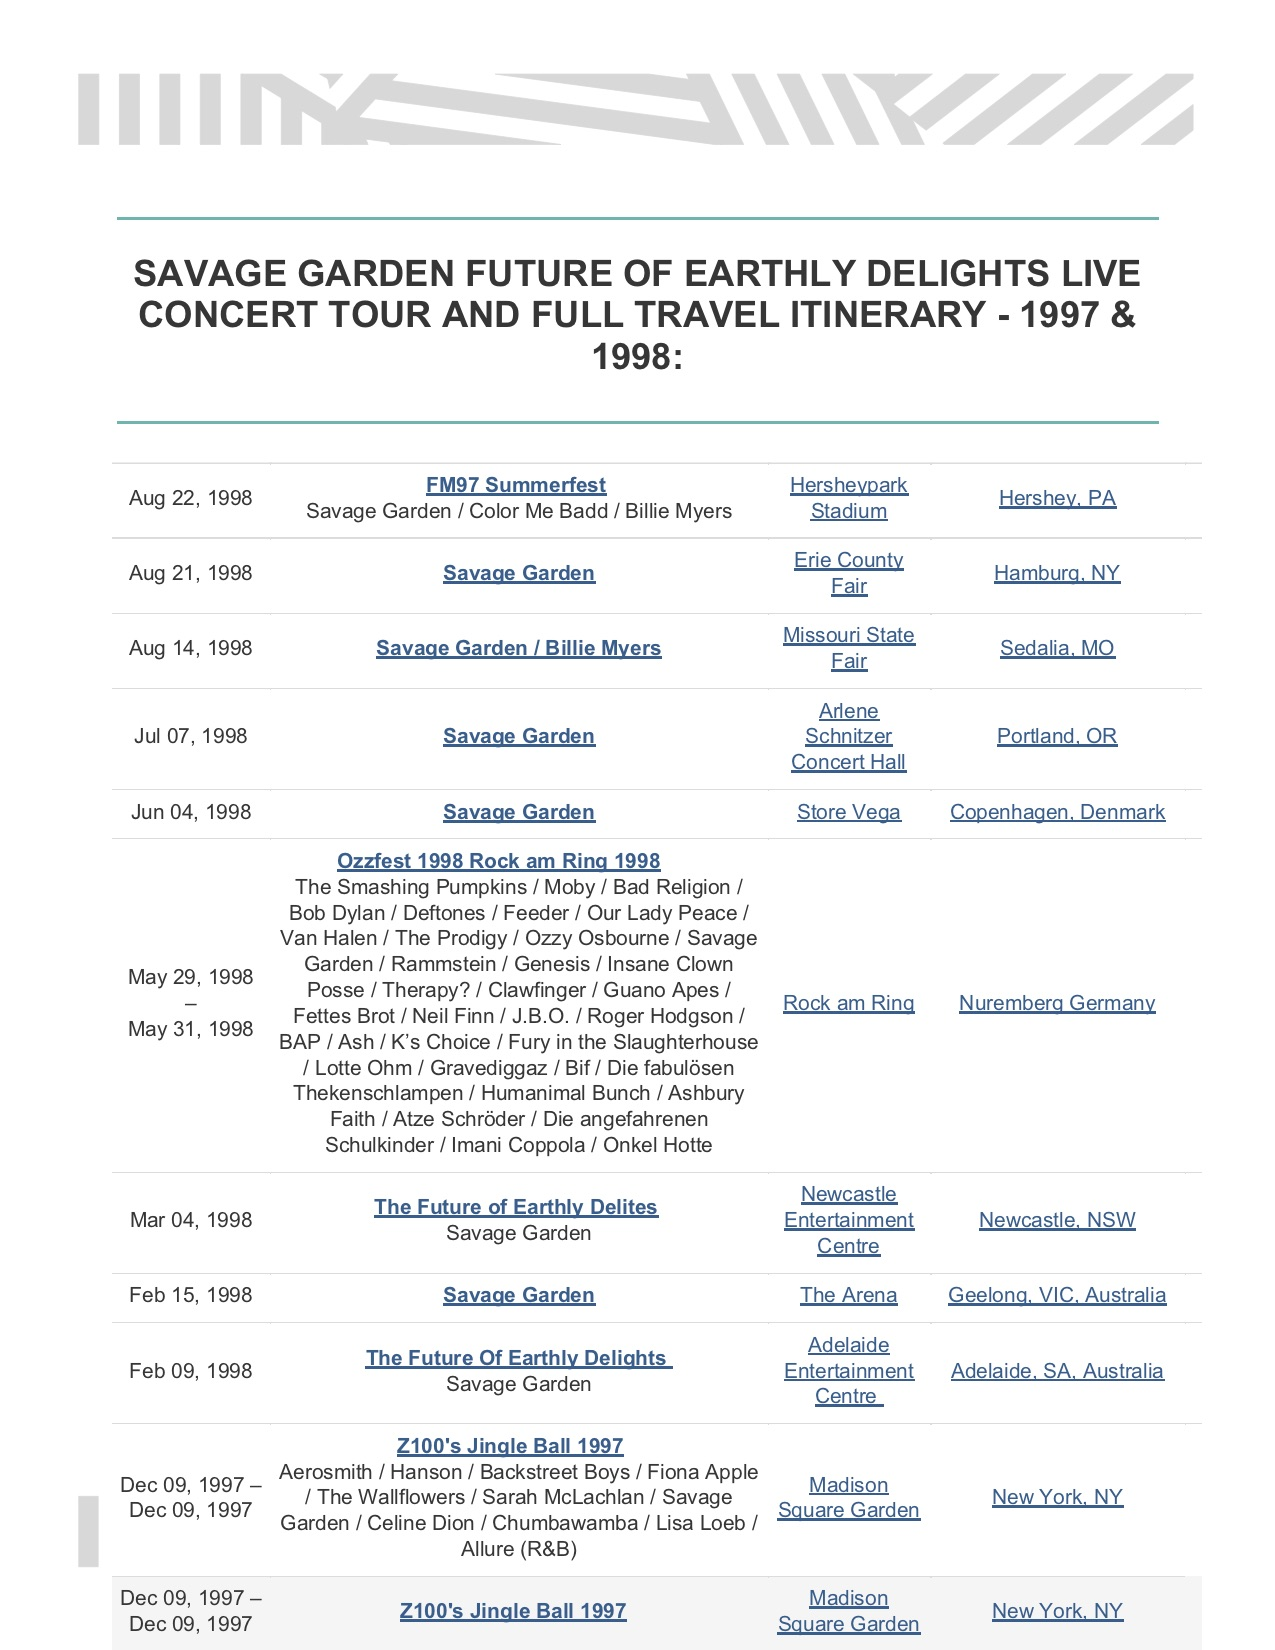 Savage Garden itinerary 1997 & 1998